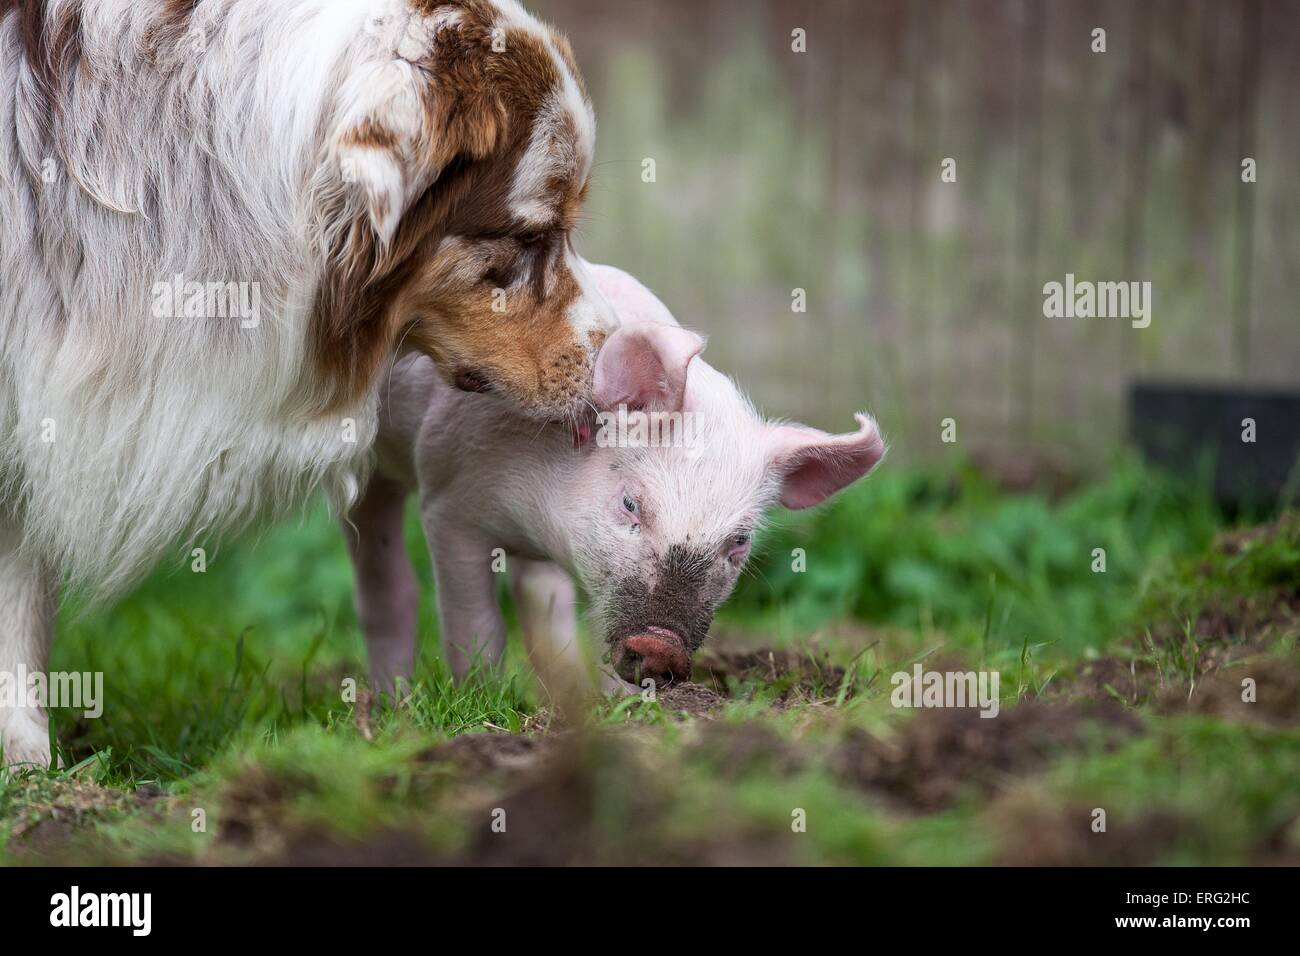 piglet and dog - Stock Image